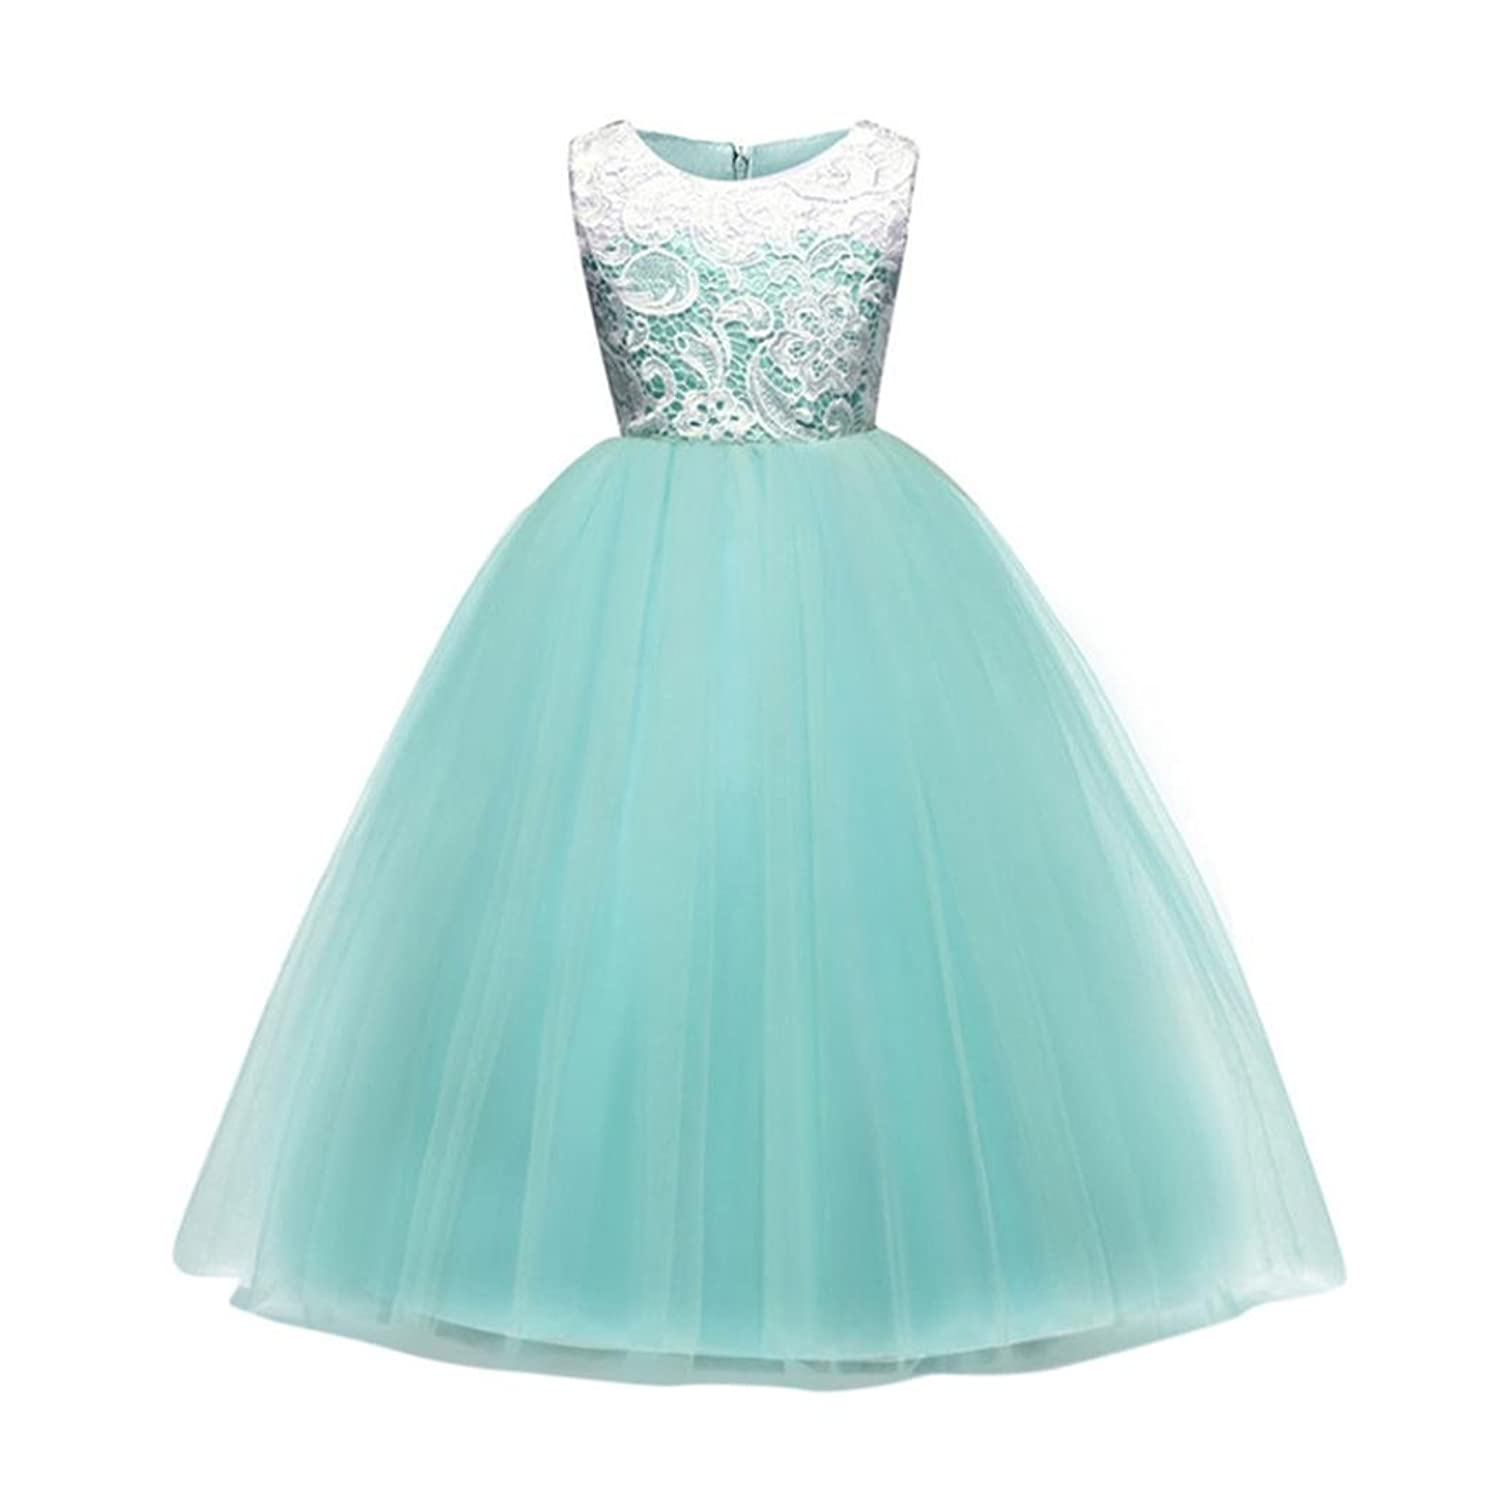 Woaills Hot Sale!!4-9 Years Old Baby Girl Princess Flower Bridesmaid ...